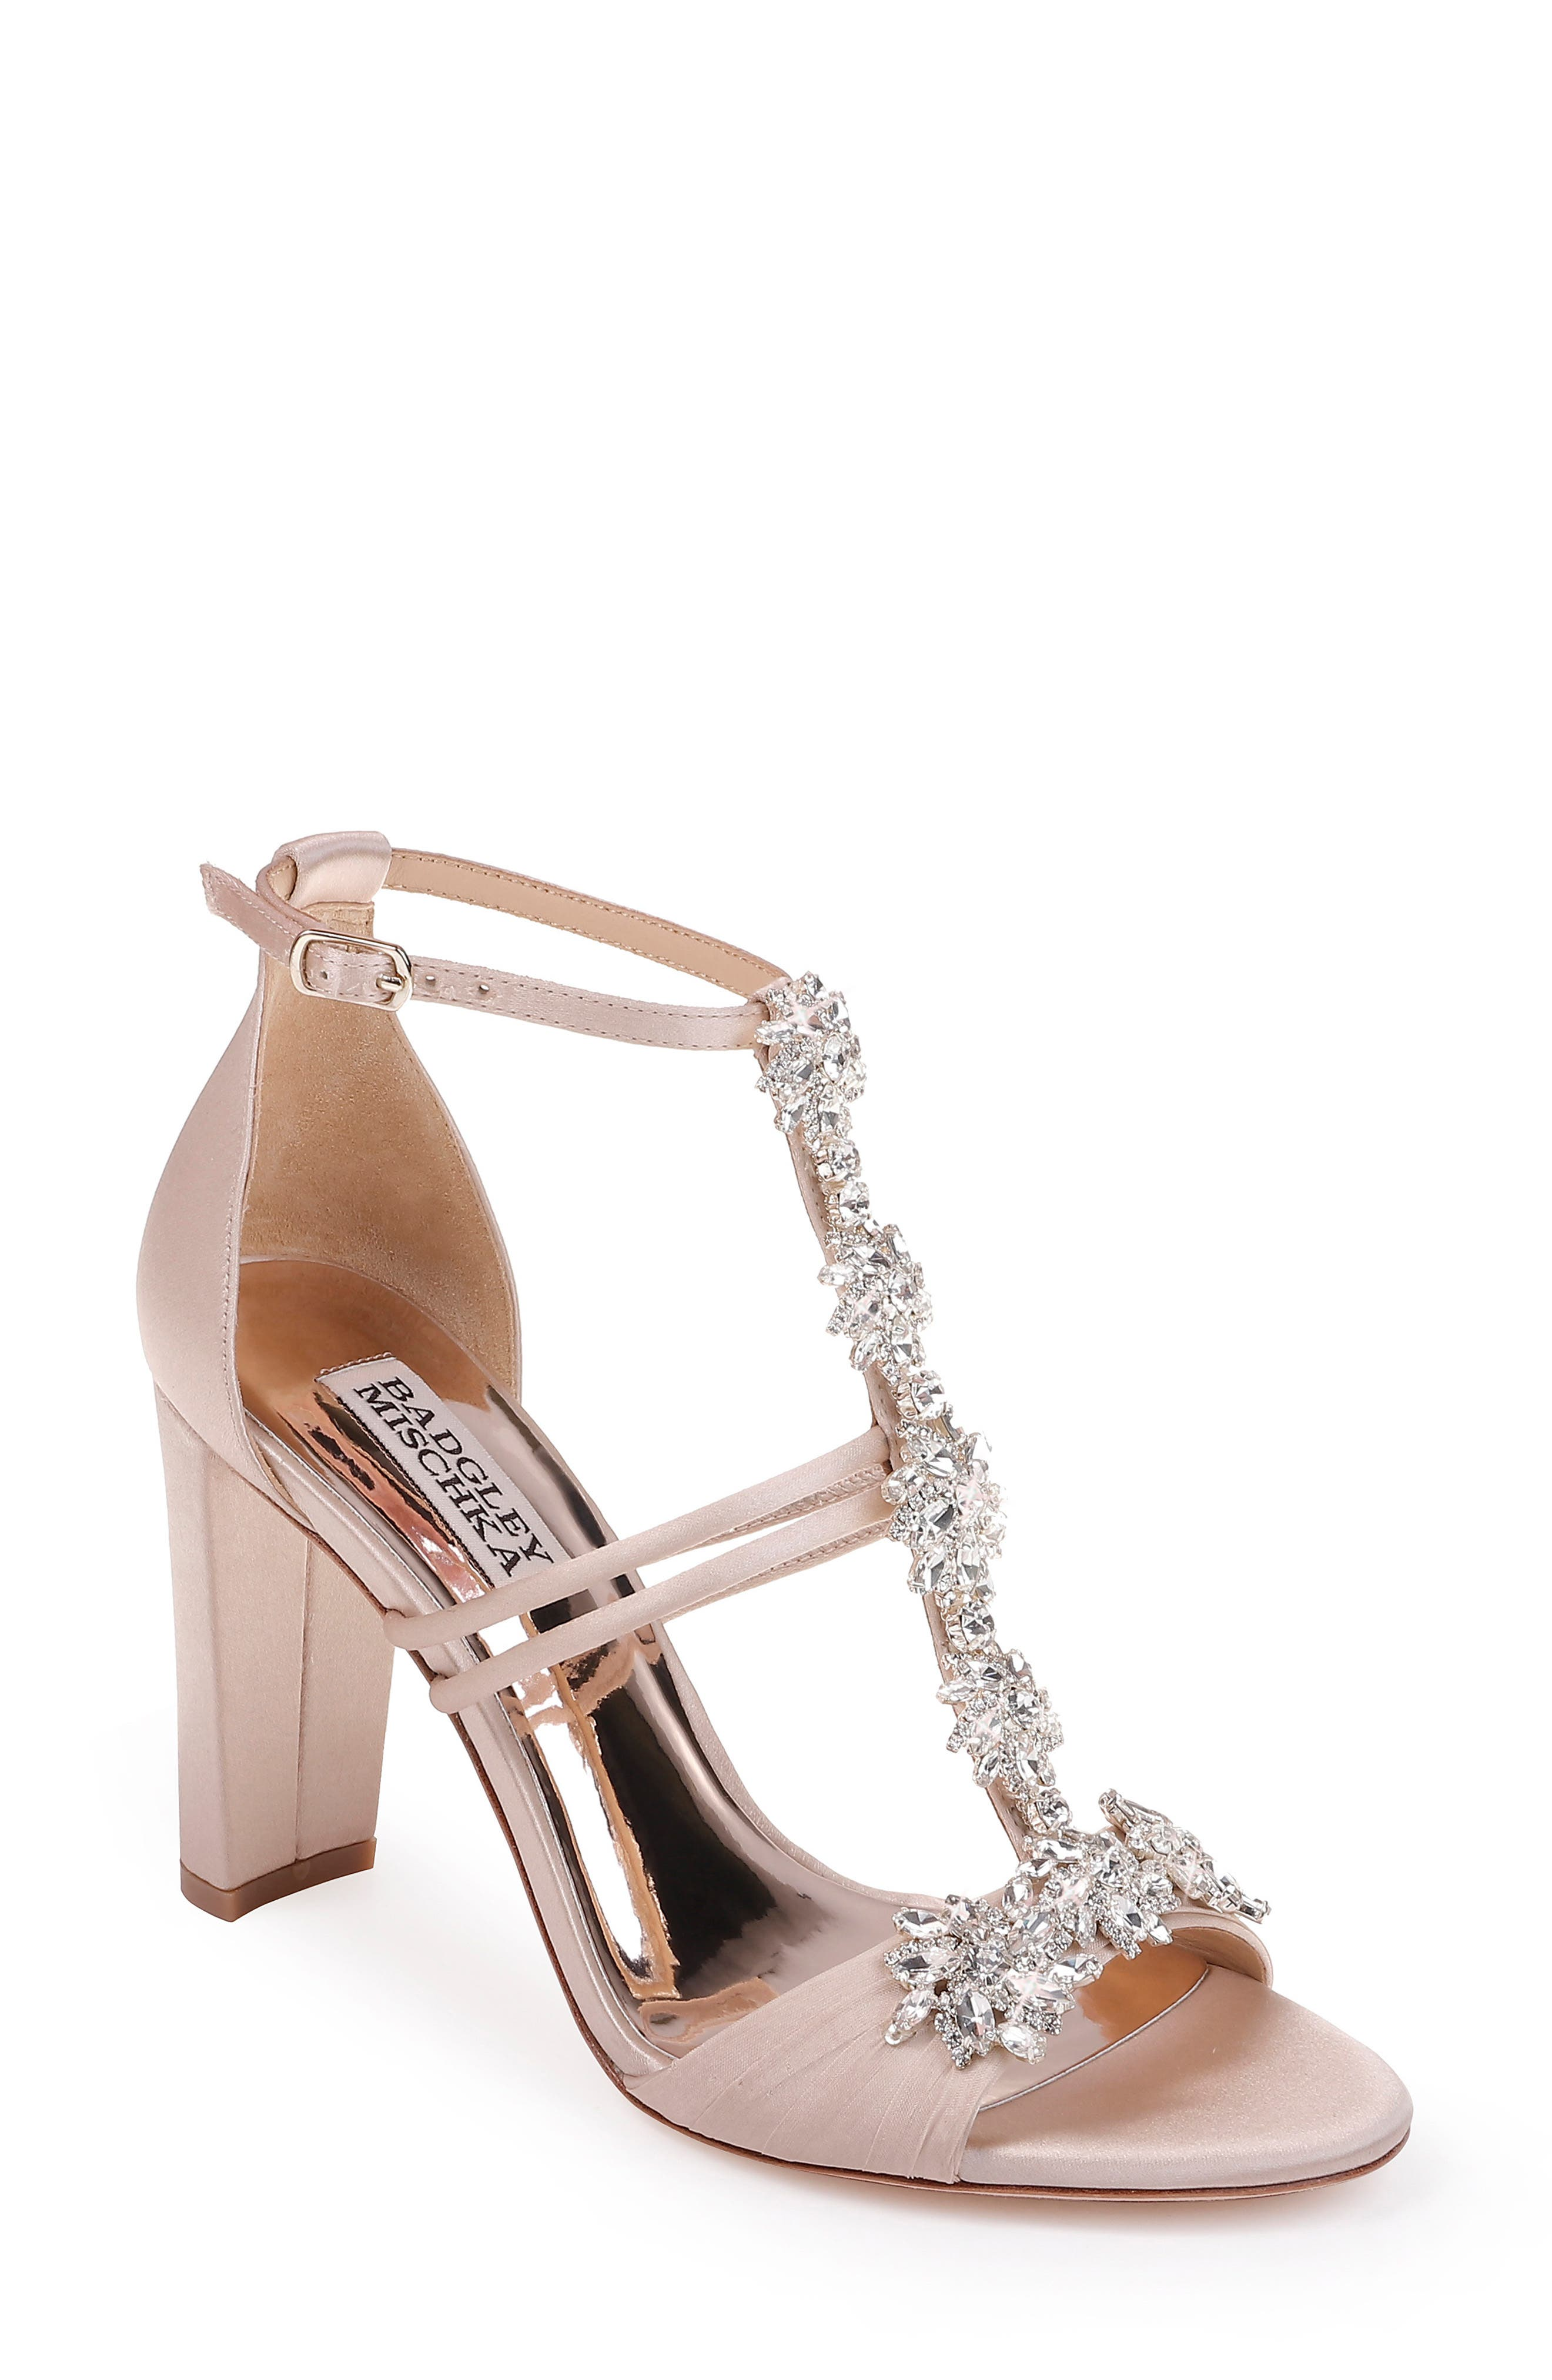 Badgley Mischka Laney Sandal- Ivory